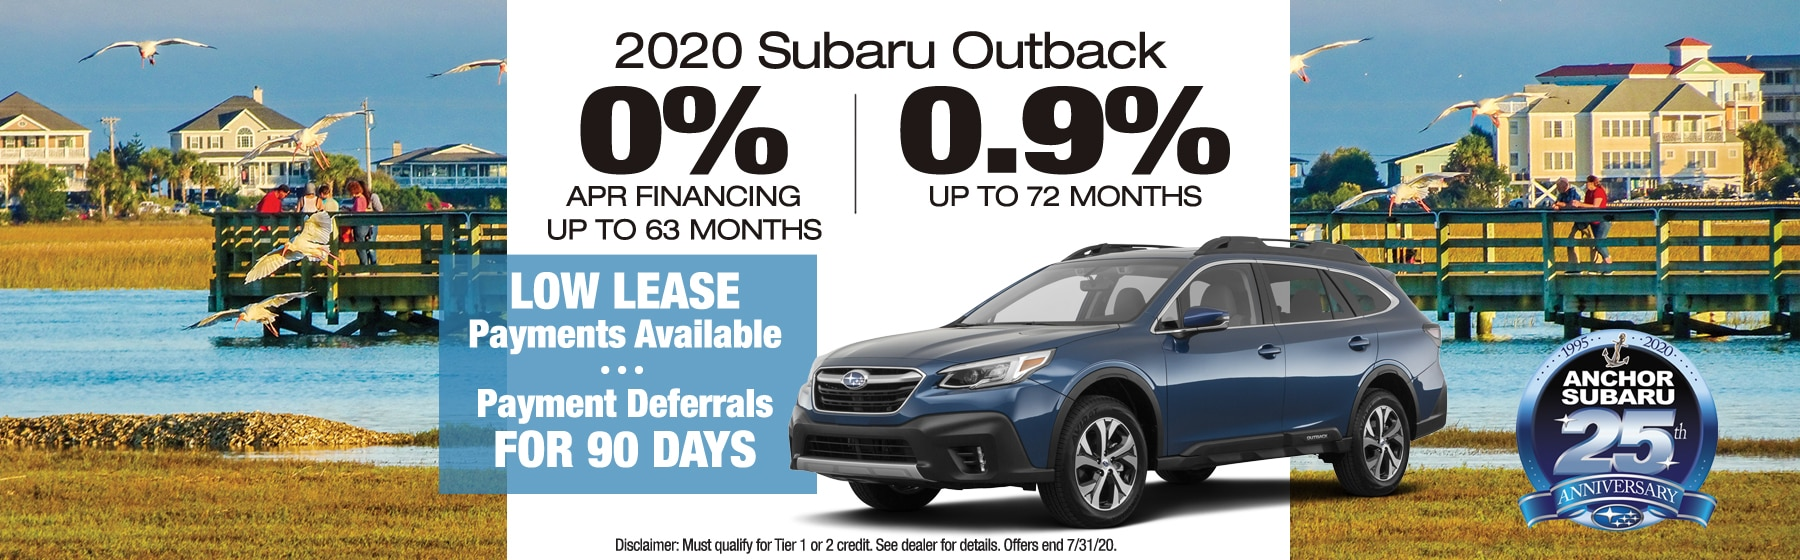 2020 subaru outback 0% apr financing no payments 90 days